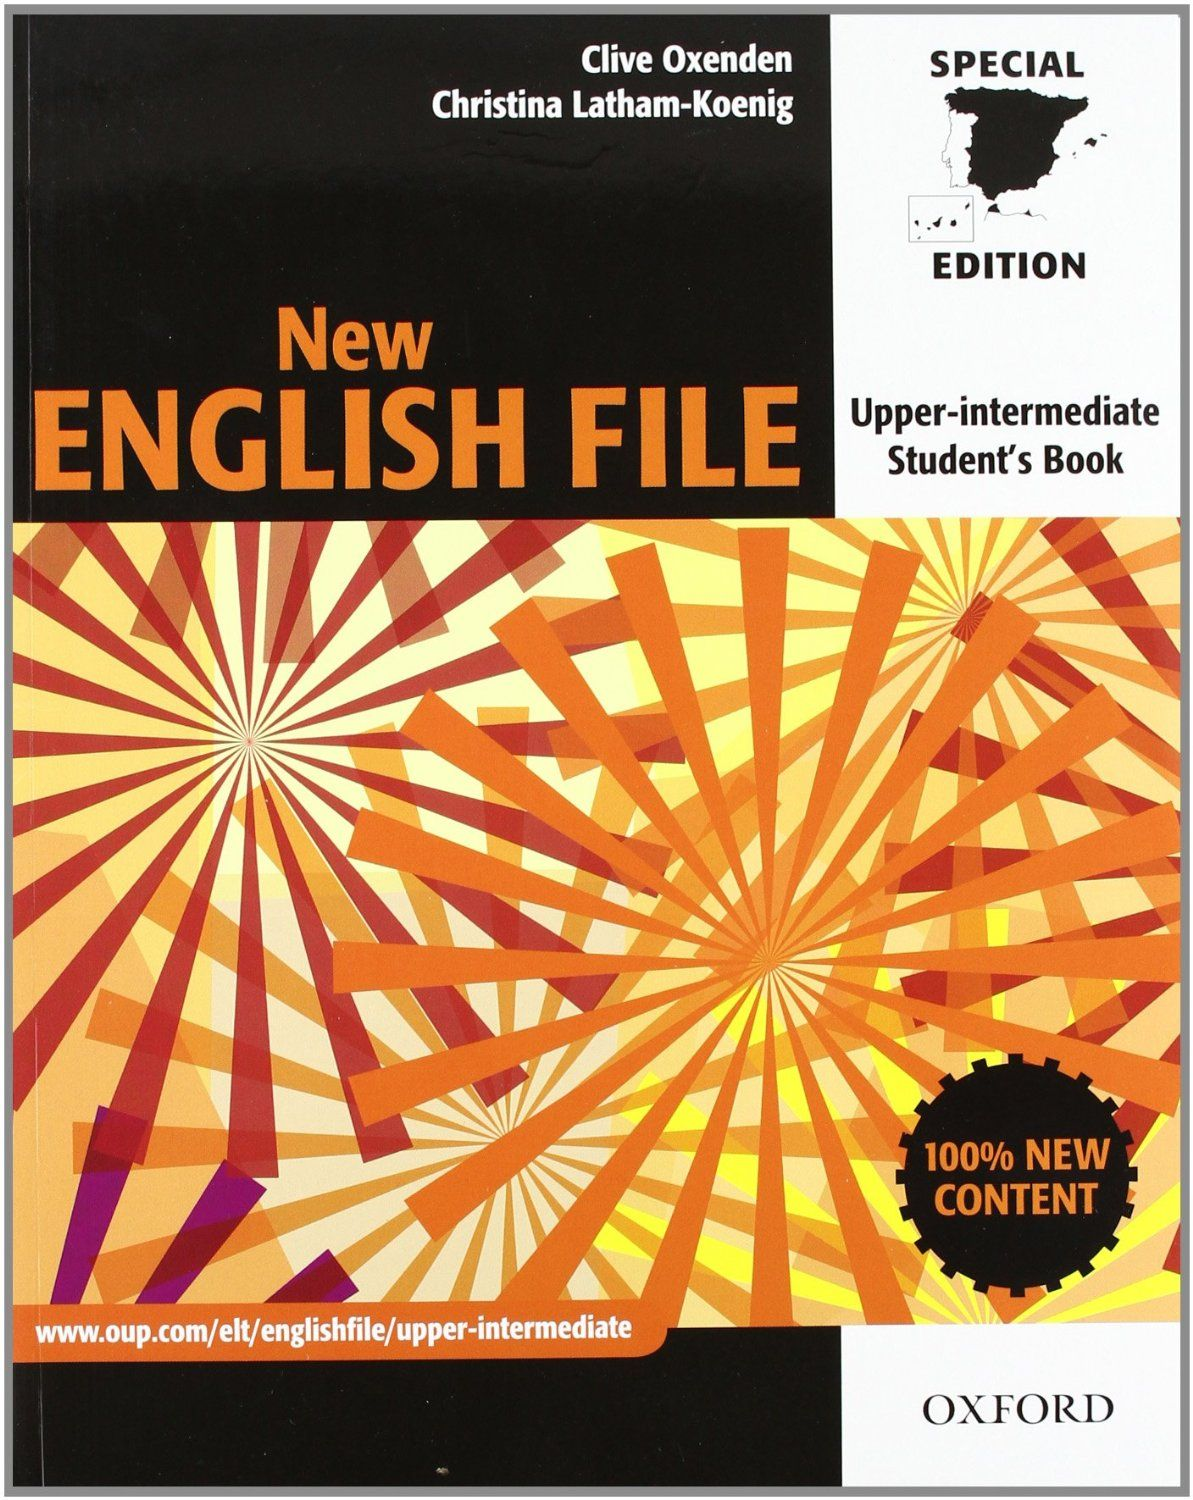 New english file upper intermediate online resources study new english file upper intermediate students book edition fandeluxe